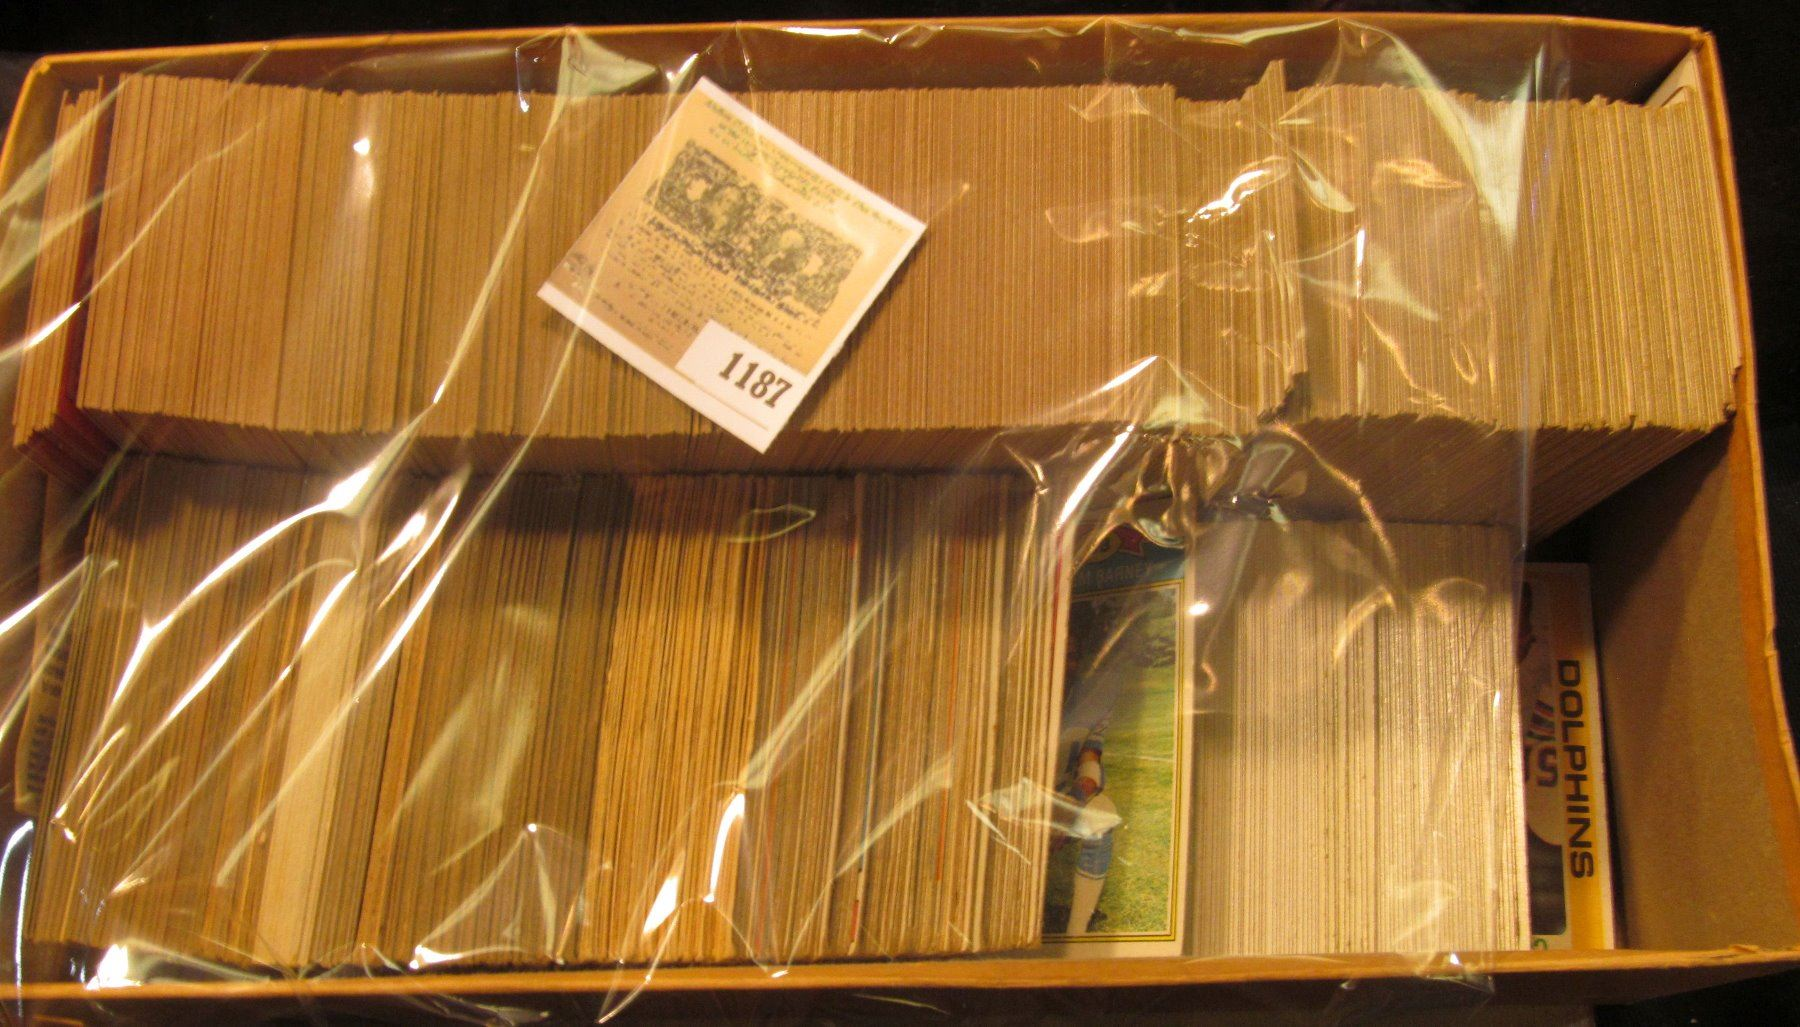 1187 Shoe Box Of 1970 Topps Era Baseball Cards Which I Did Not Have Time To Sort